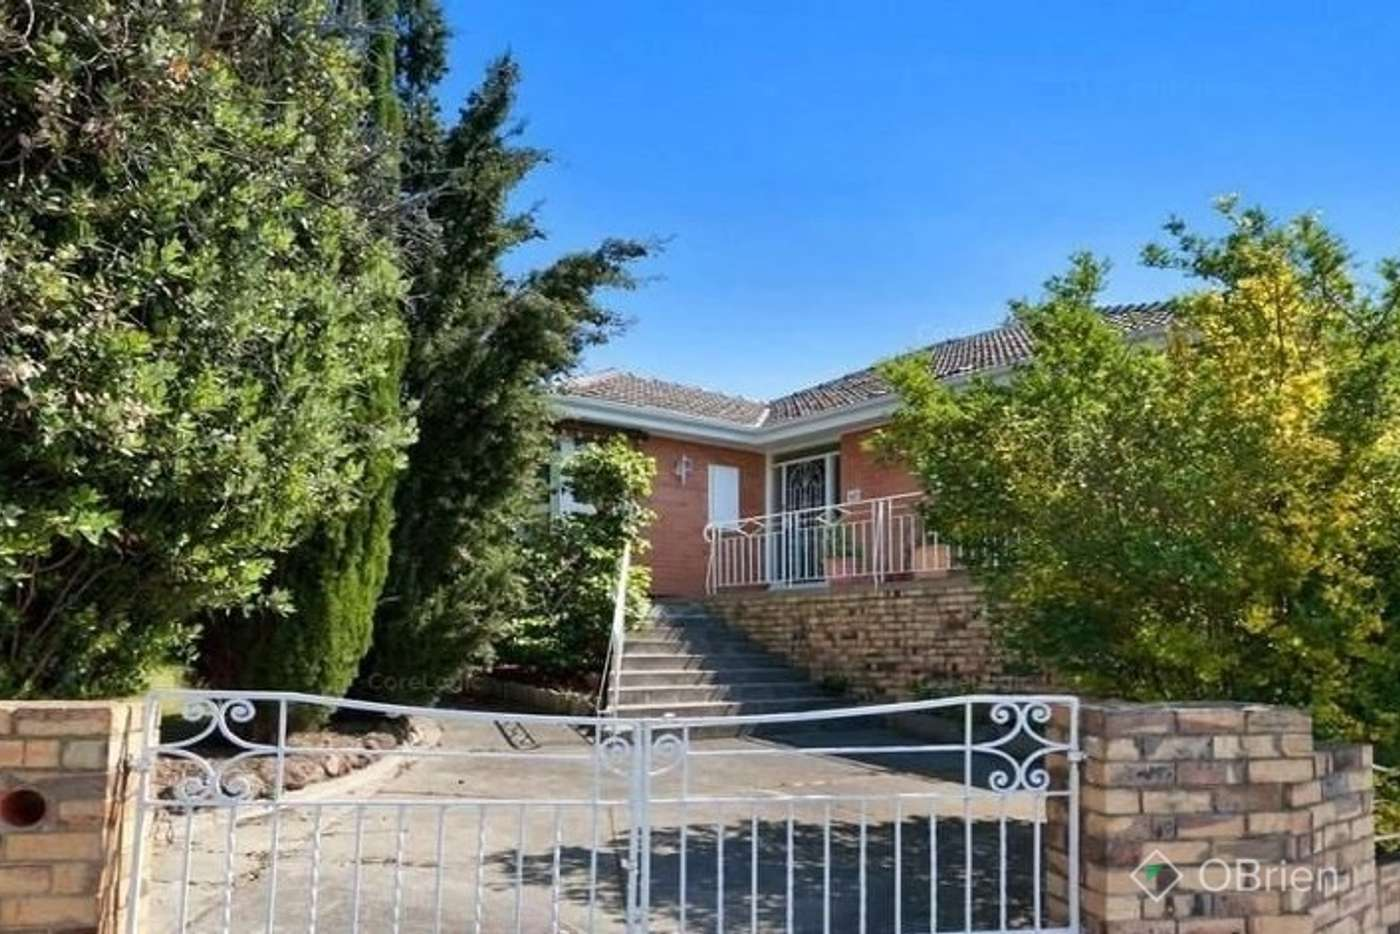 Main view of Homely house listing, 60 Frankston-Flinders Road, Frankston VIC 3199